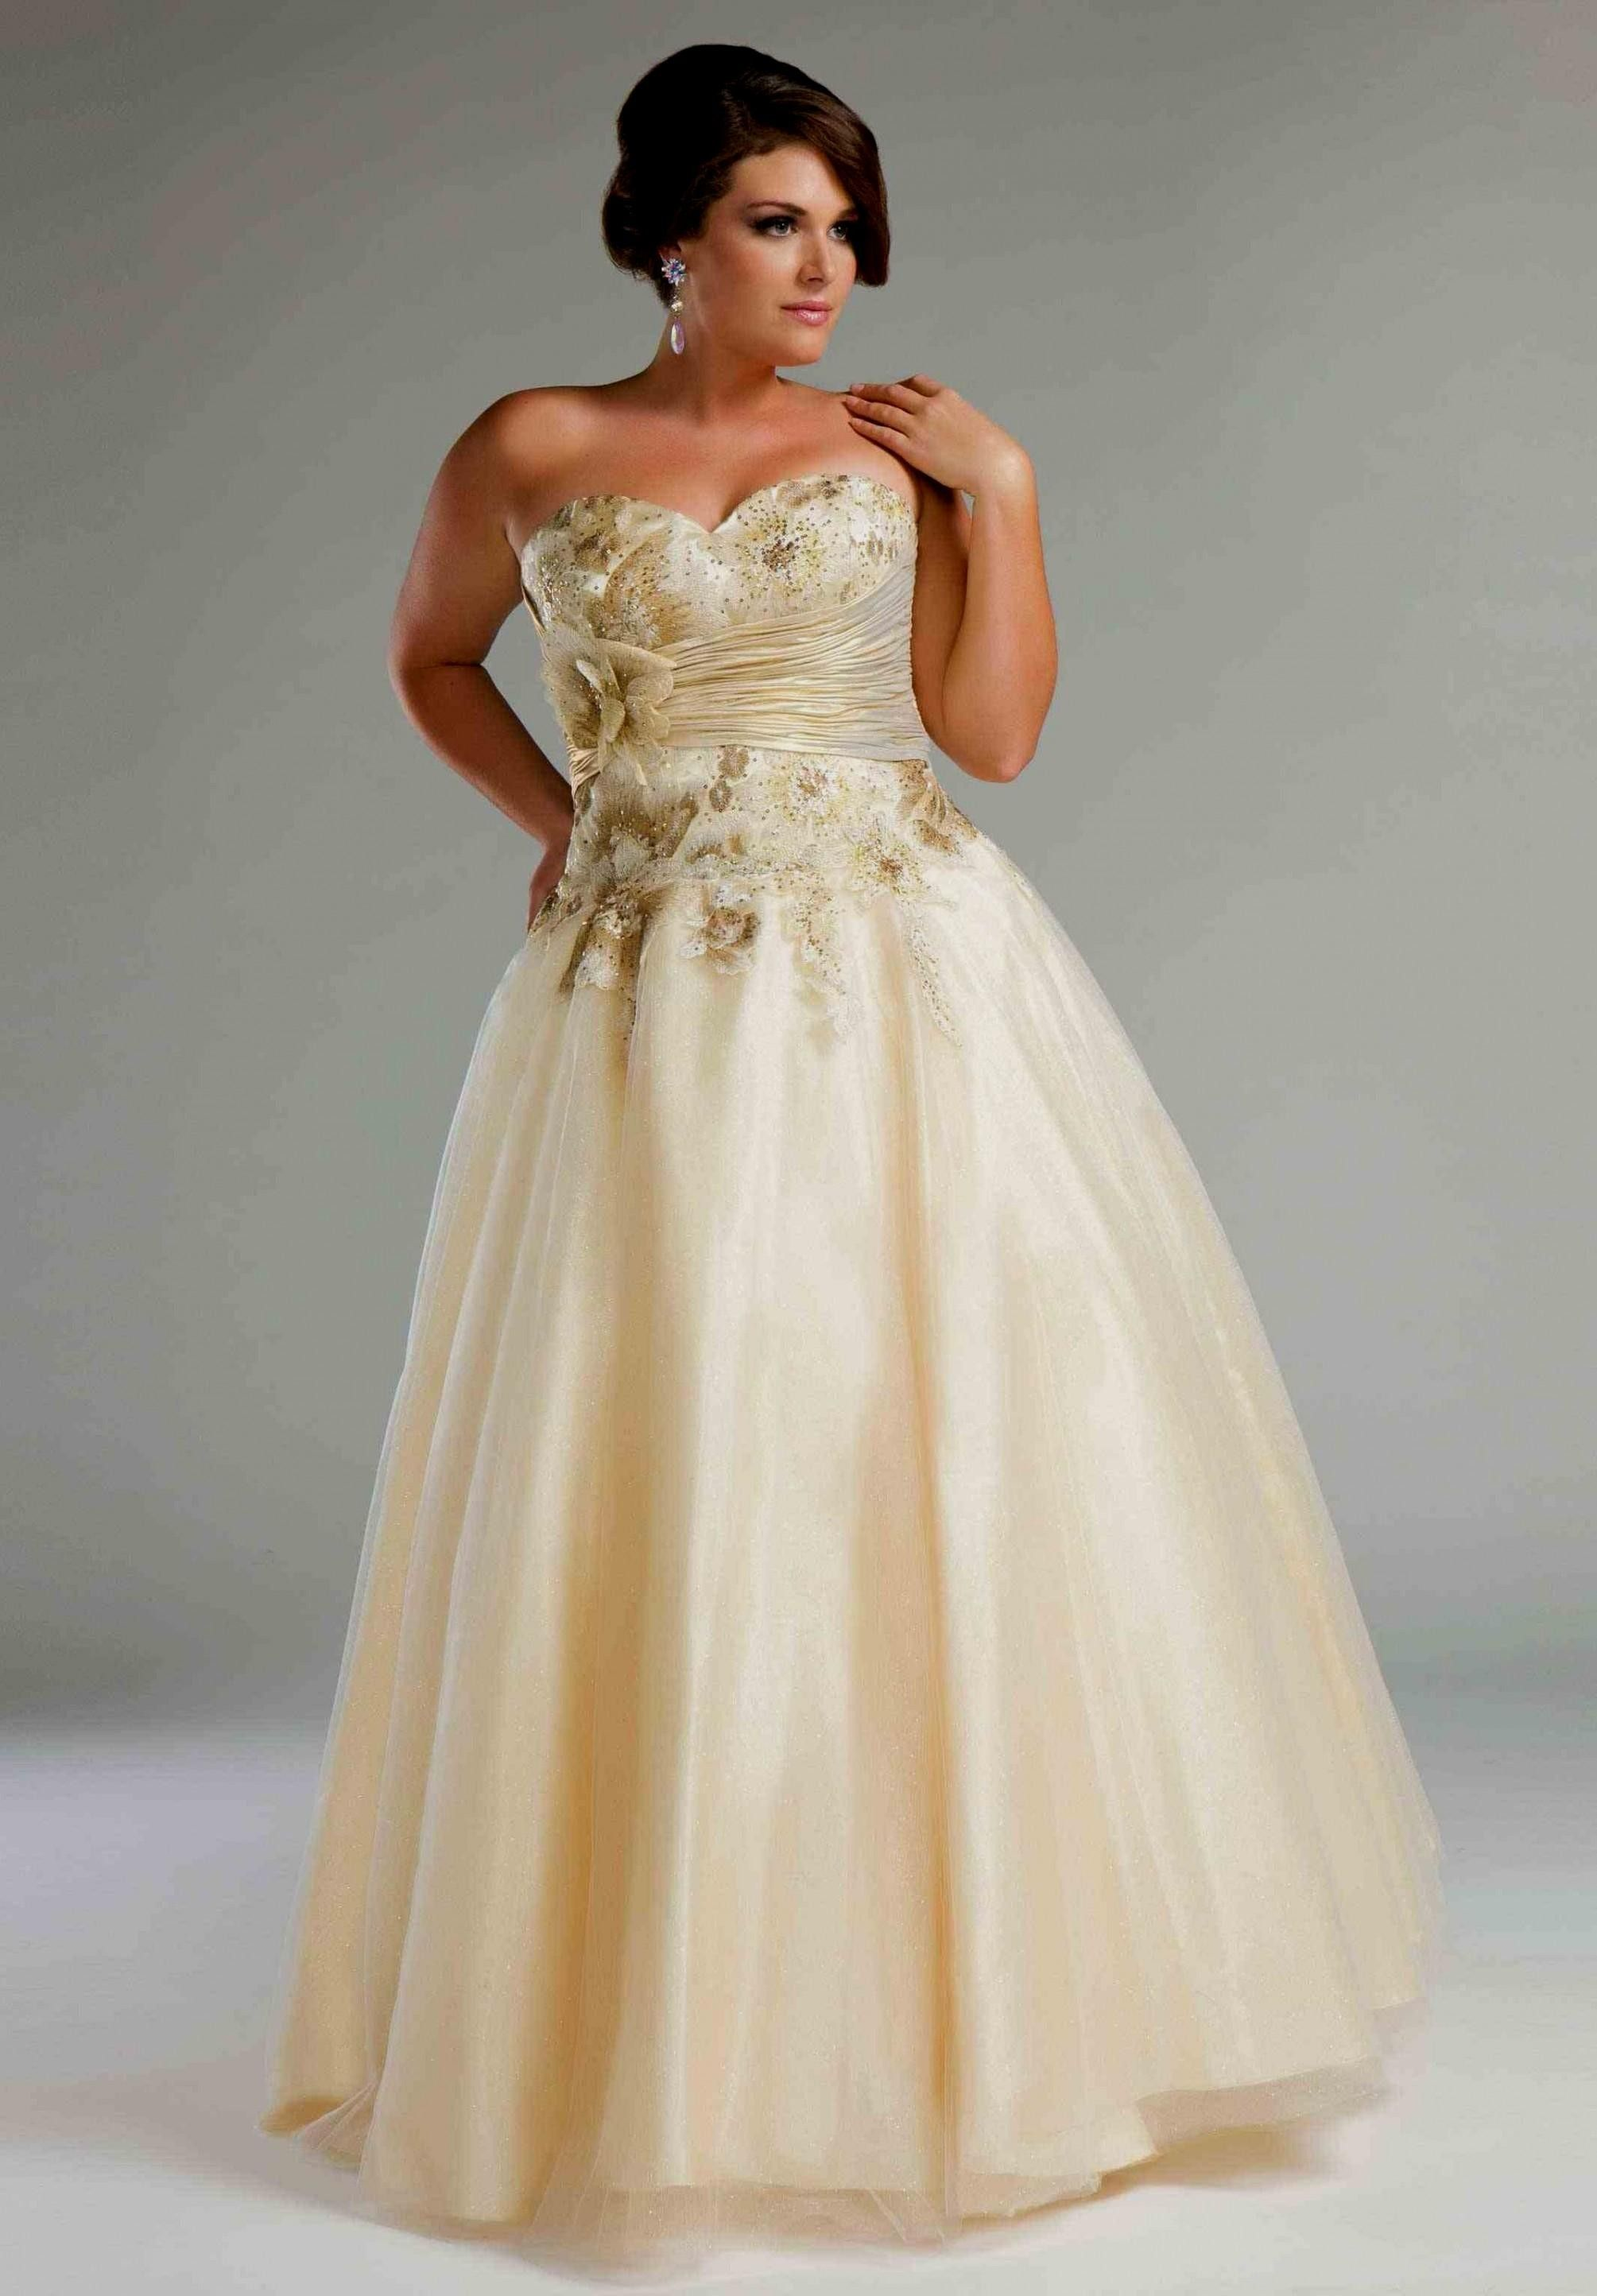 Pix For > Plus Size Gold Wedding Dresses | Ideas for Dream Wedding ...